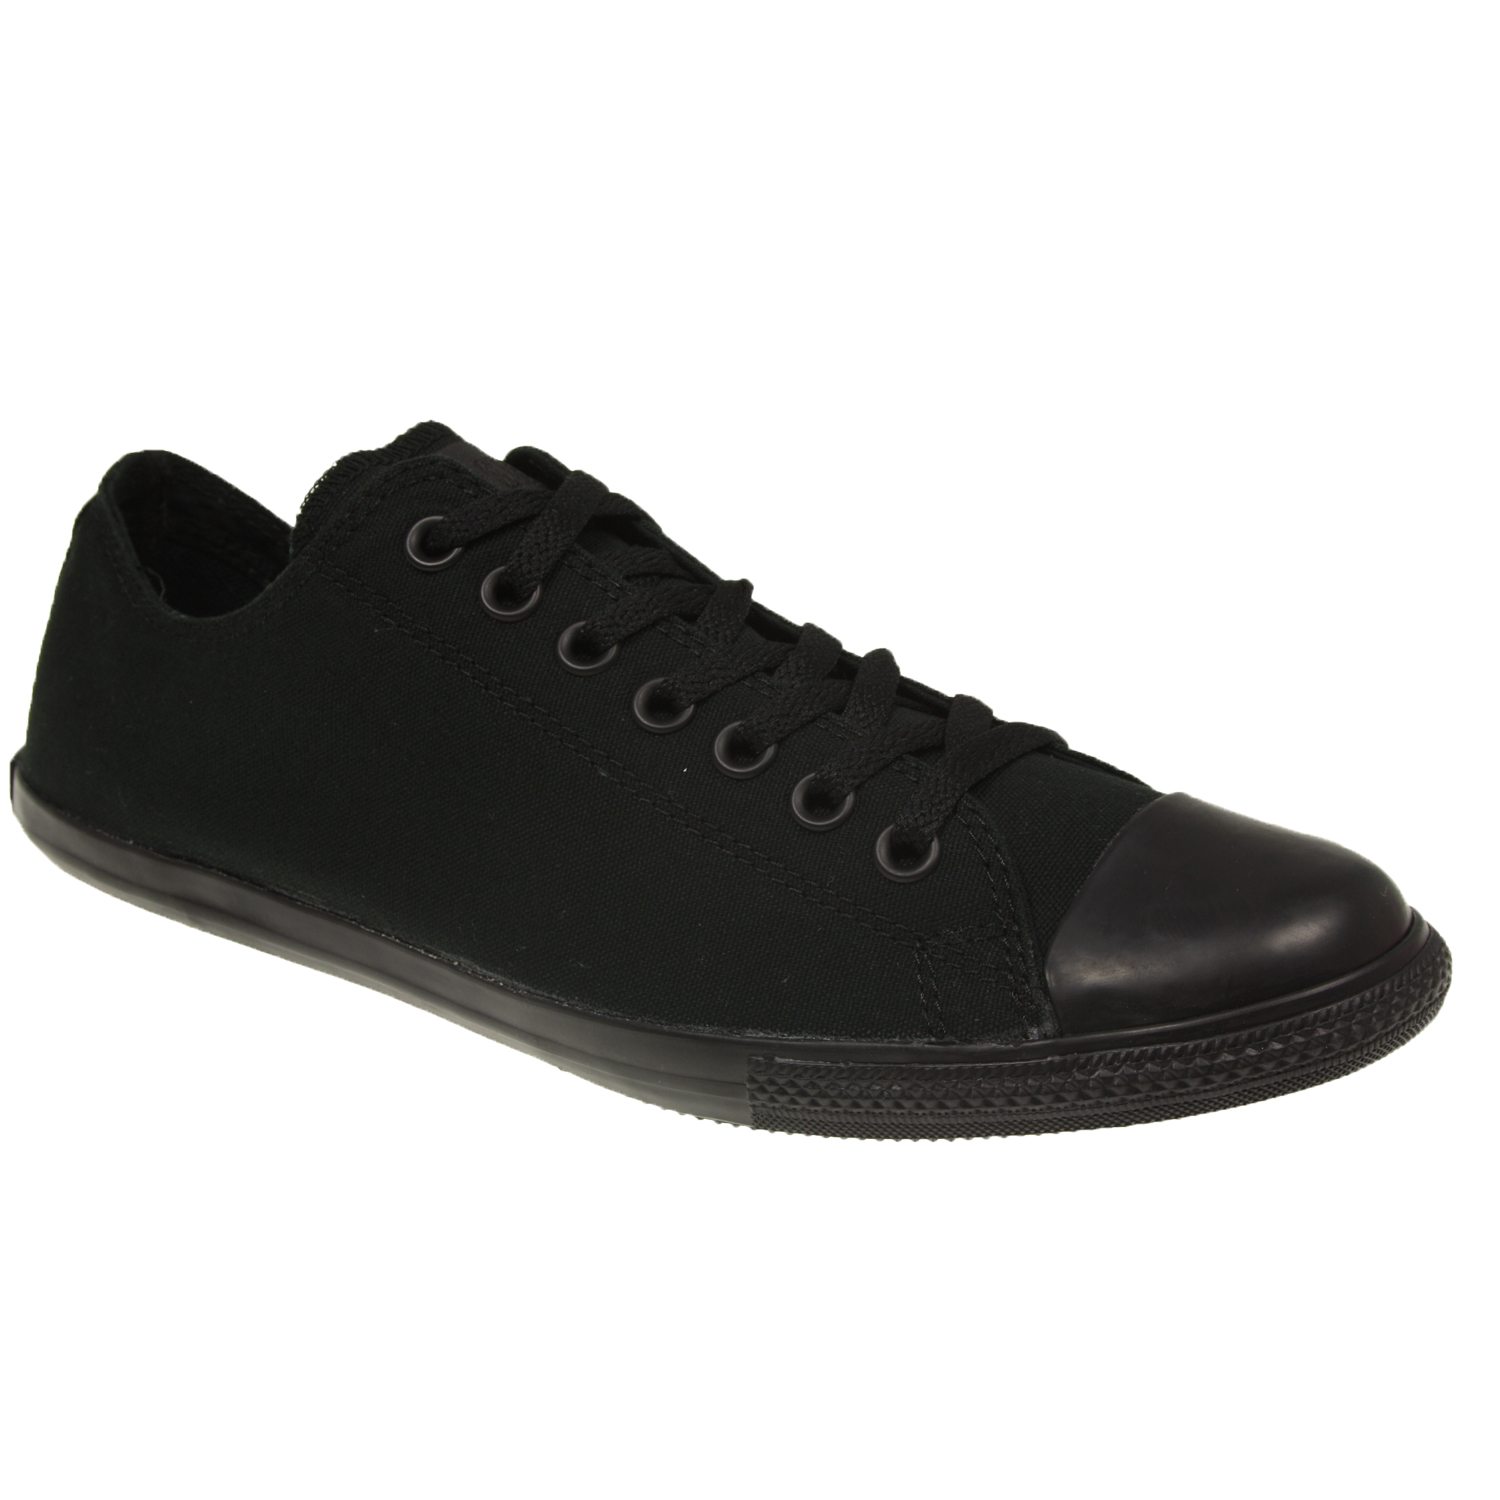 5e12251e300b Image is loading CONVERSE-ALL-STAR-MENS-SLIM-SOLE-116524-BLACK-